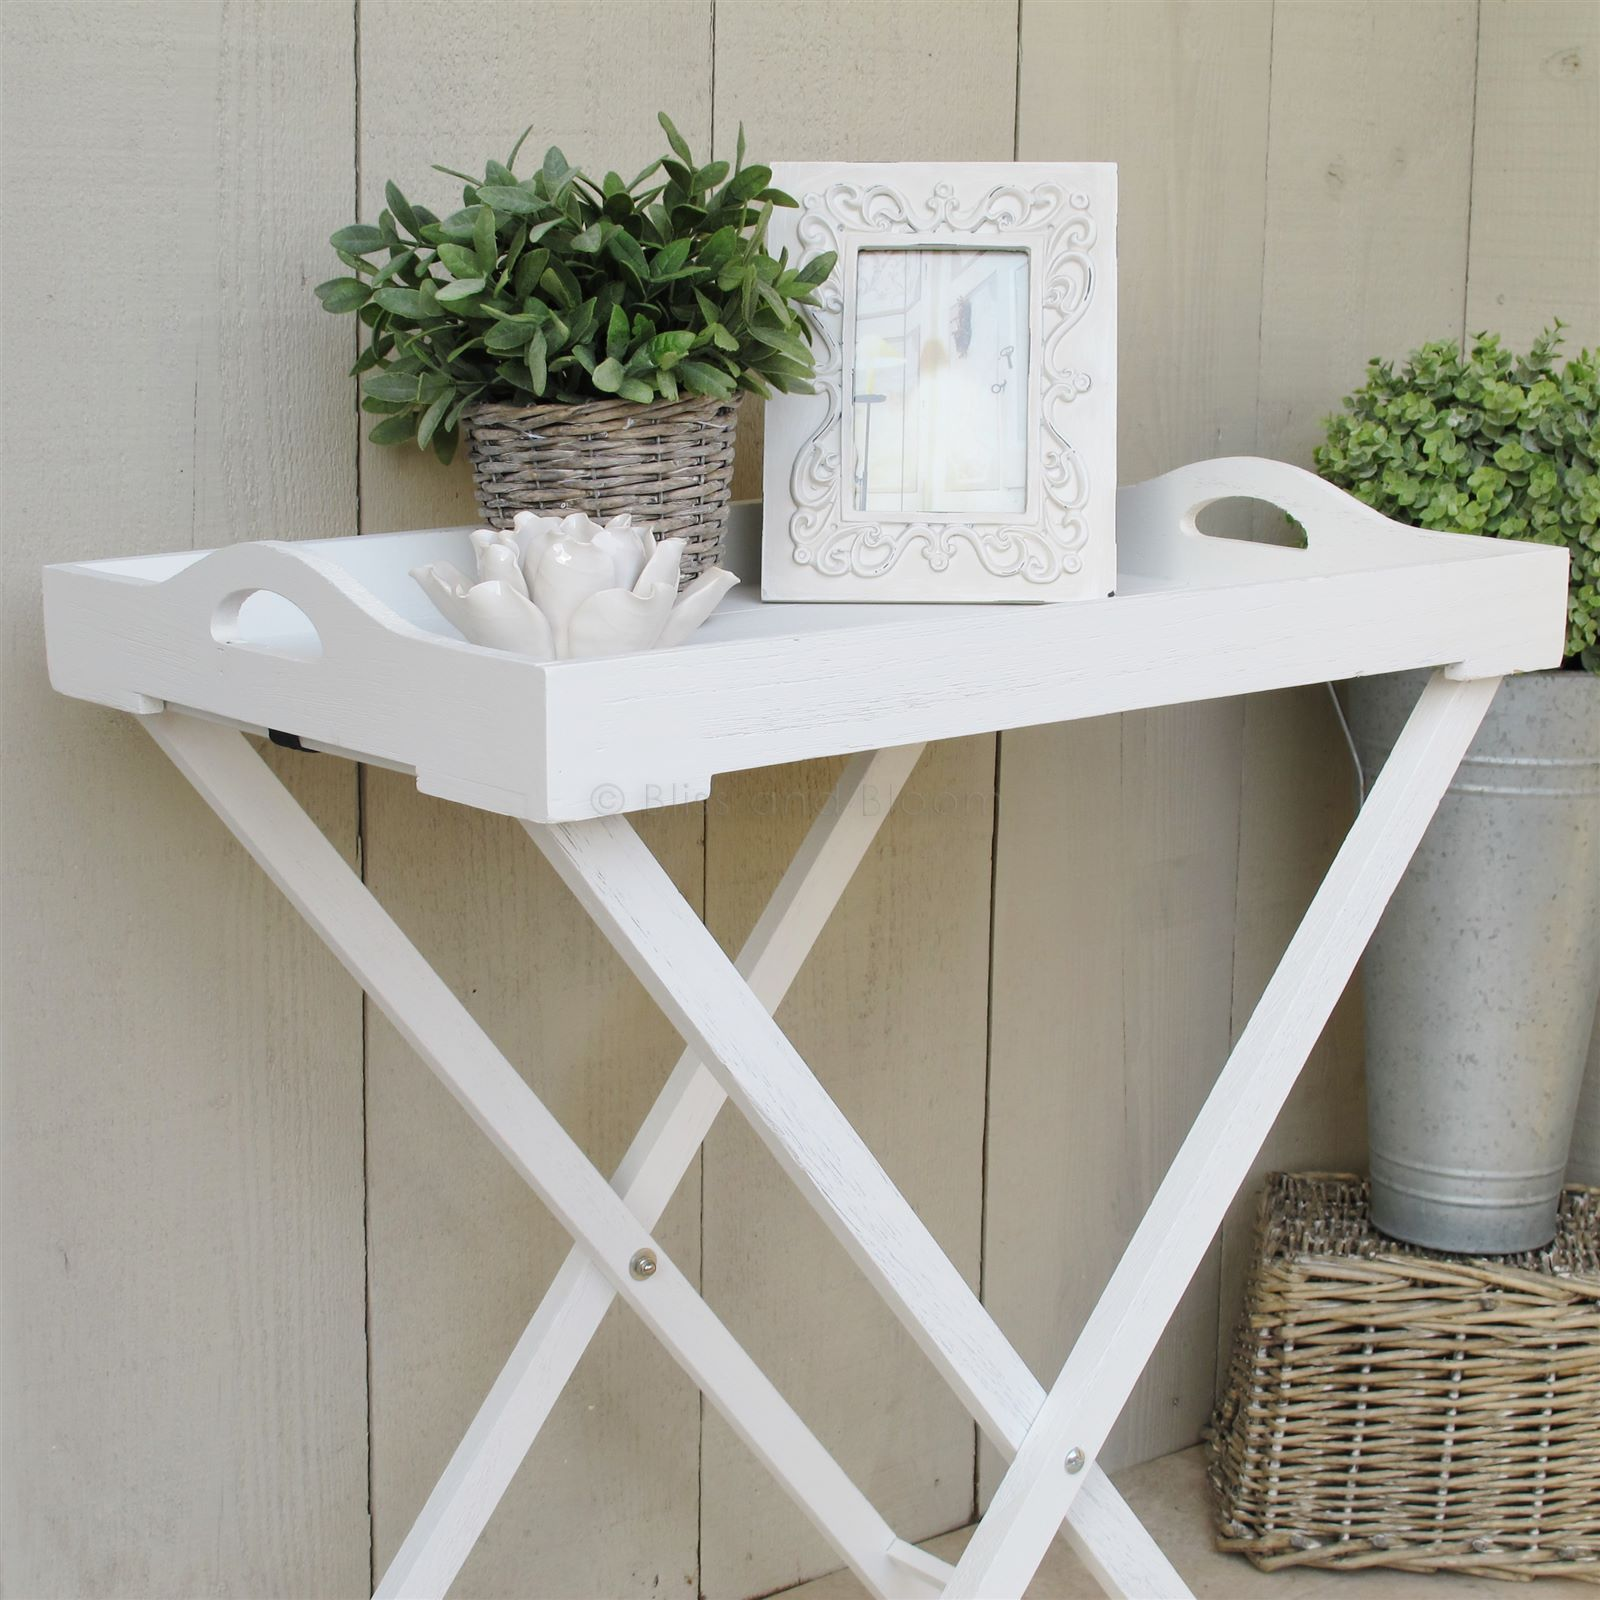 White wooden tray on stand | Bliss and Bloom Ltd